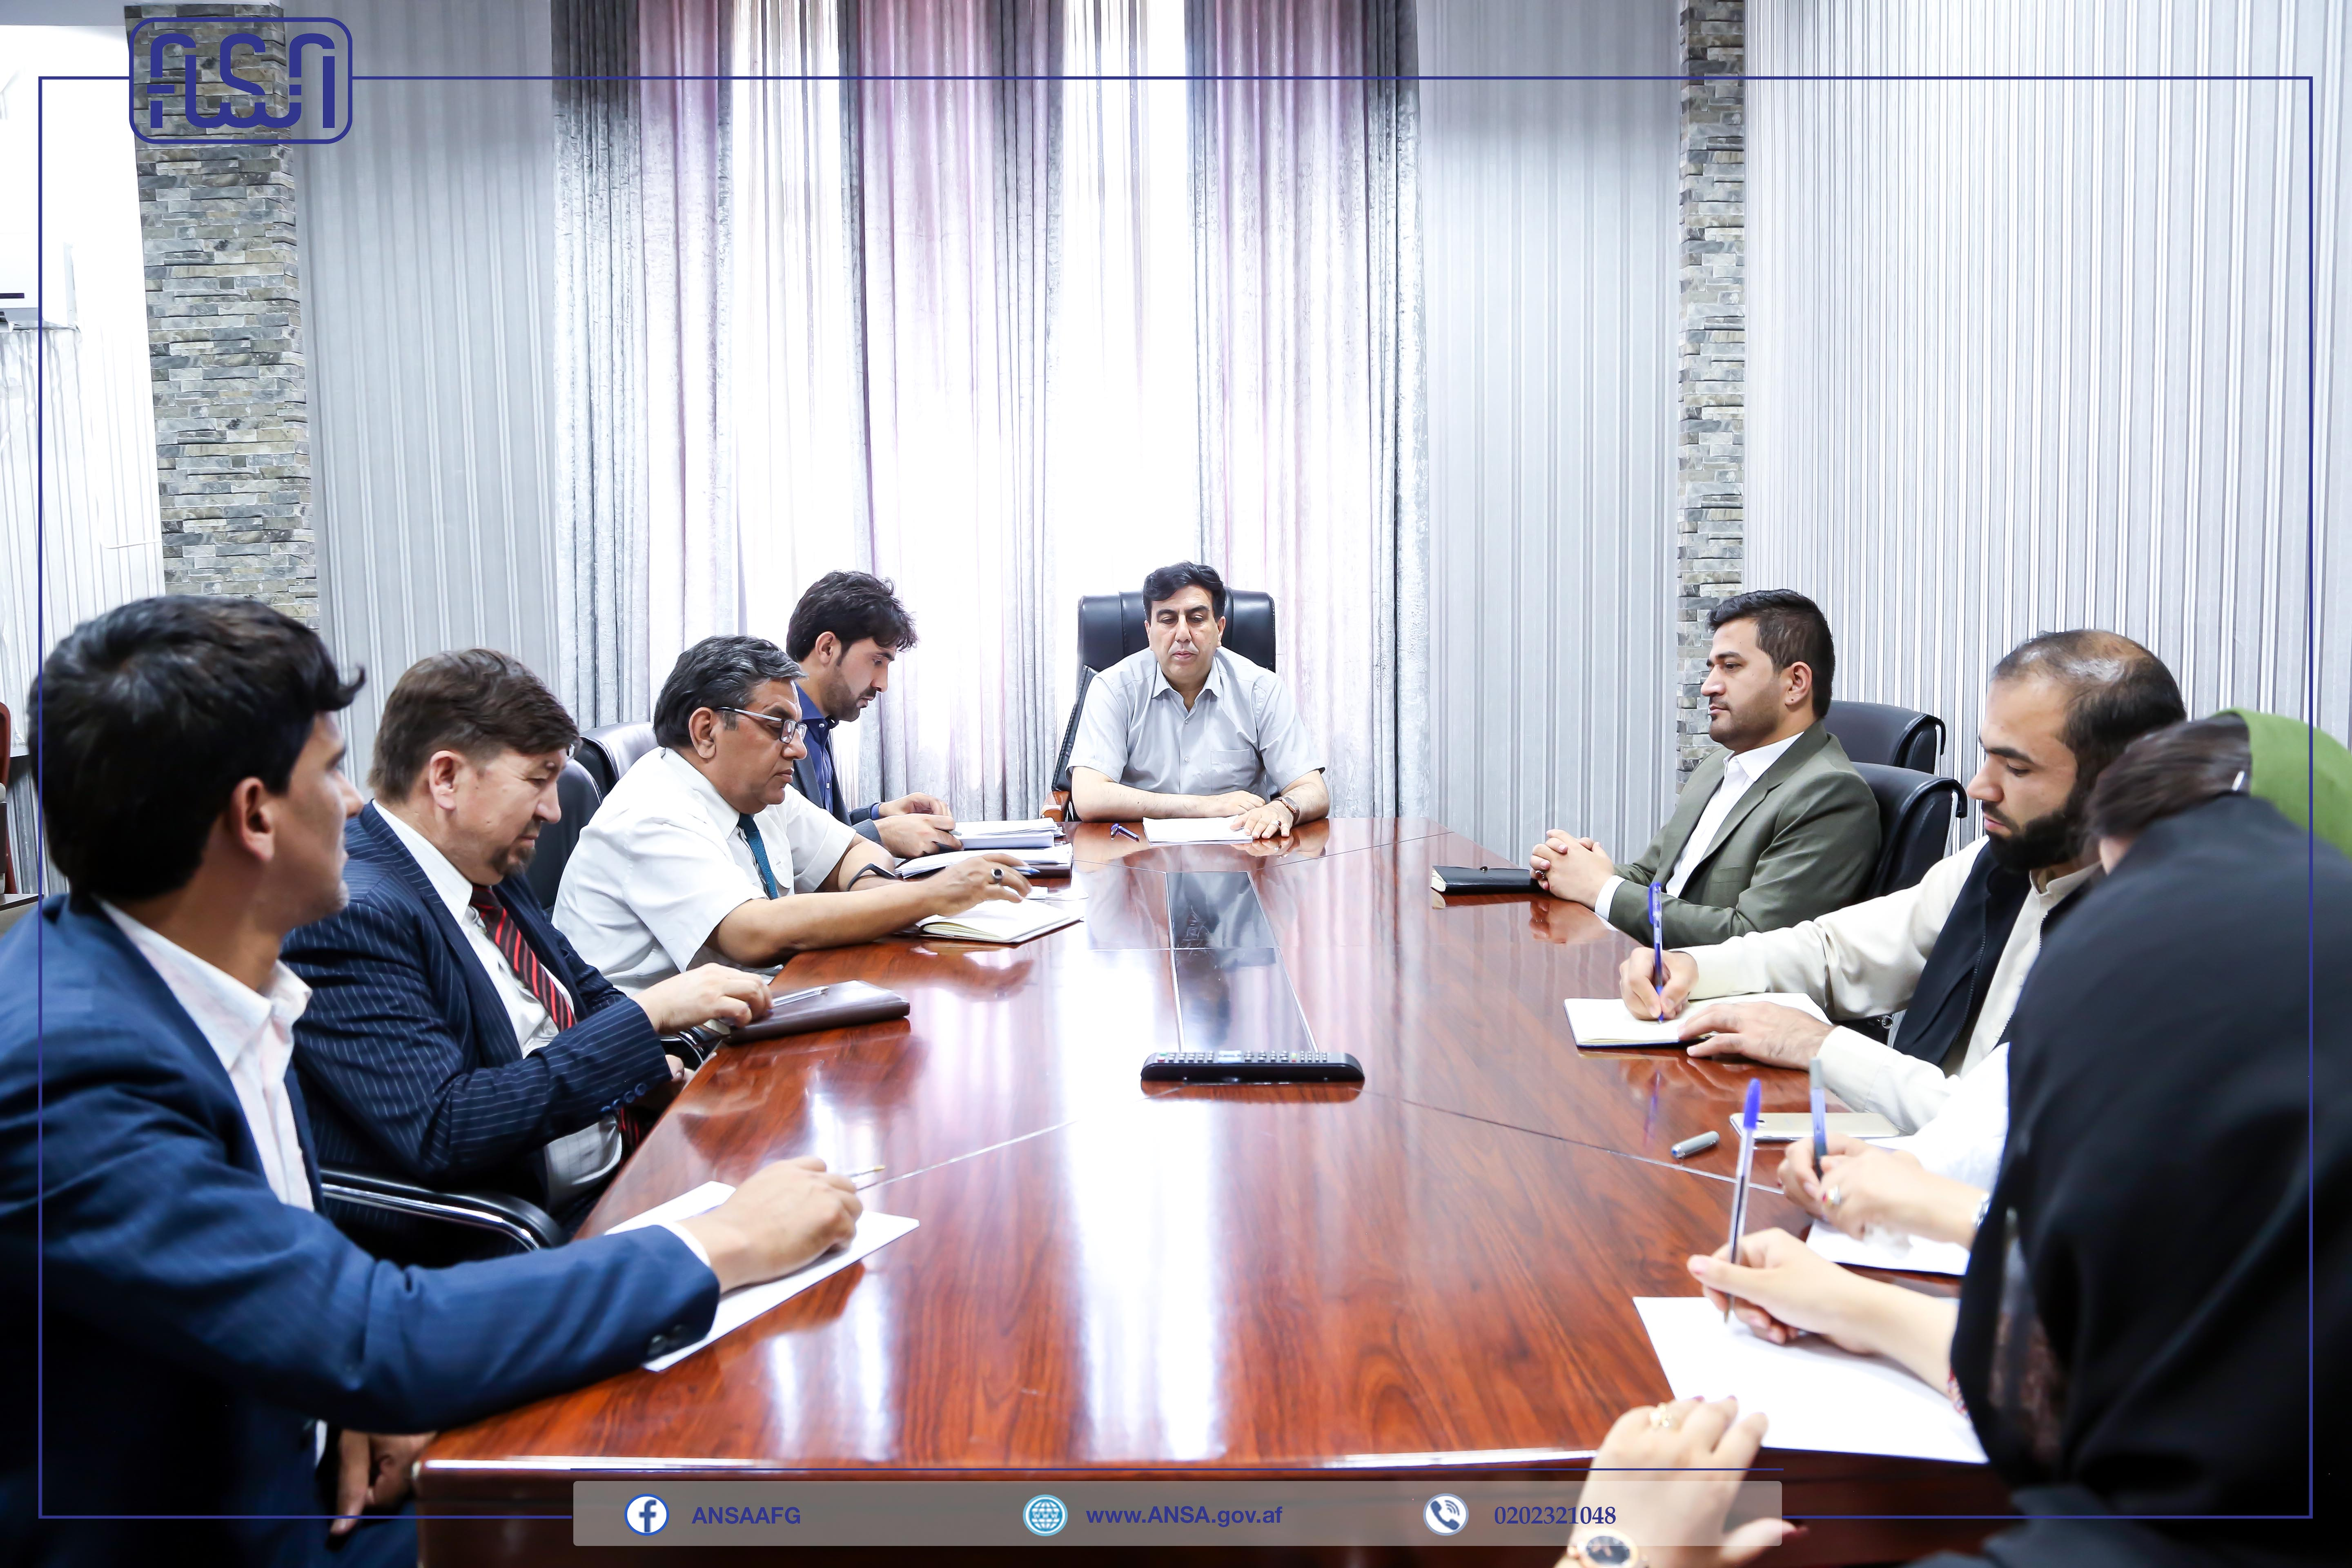 A meeting of the National Standards Authority contract evaluation committee was held.